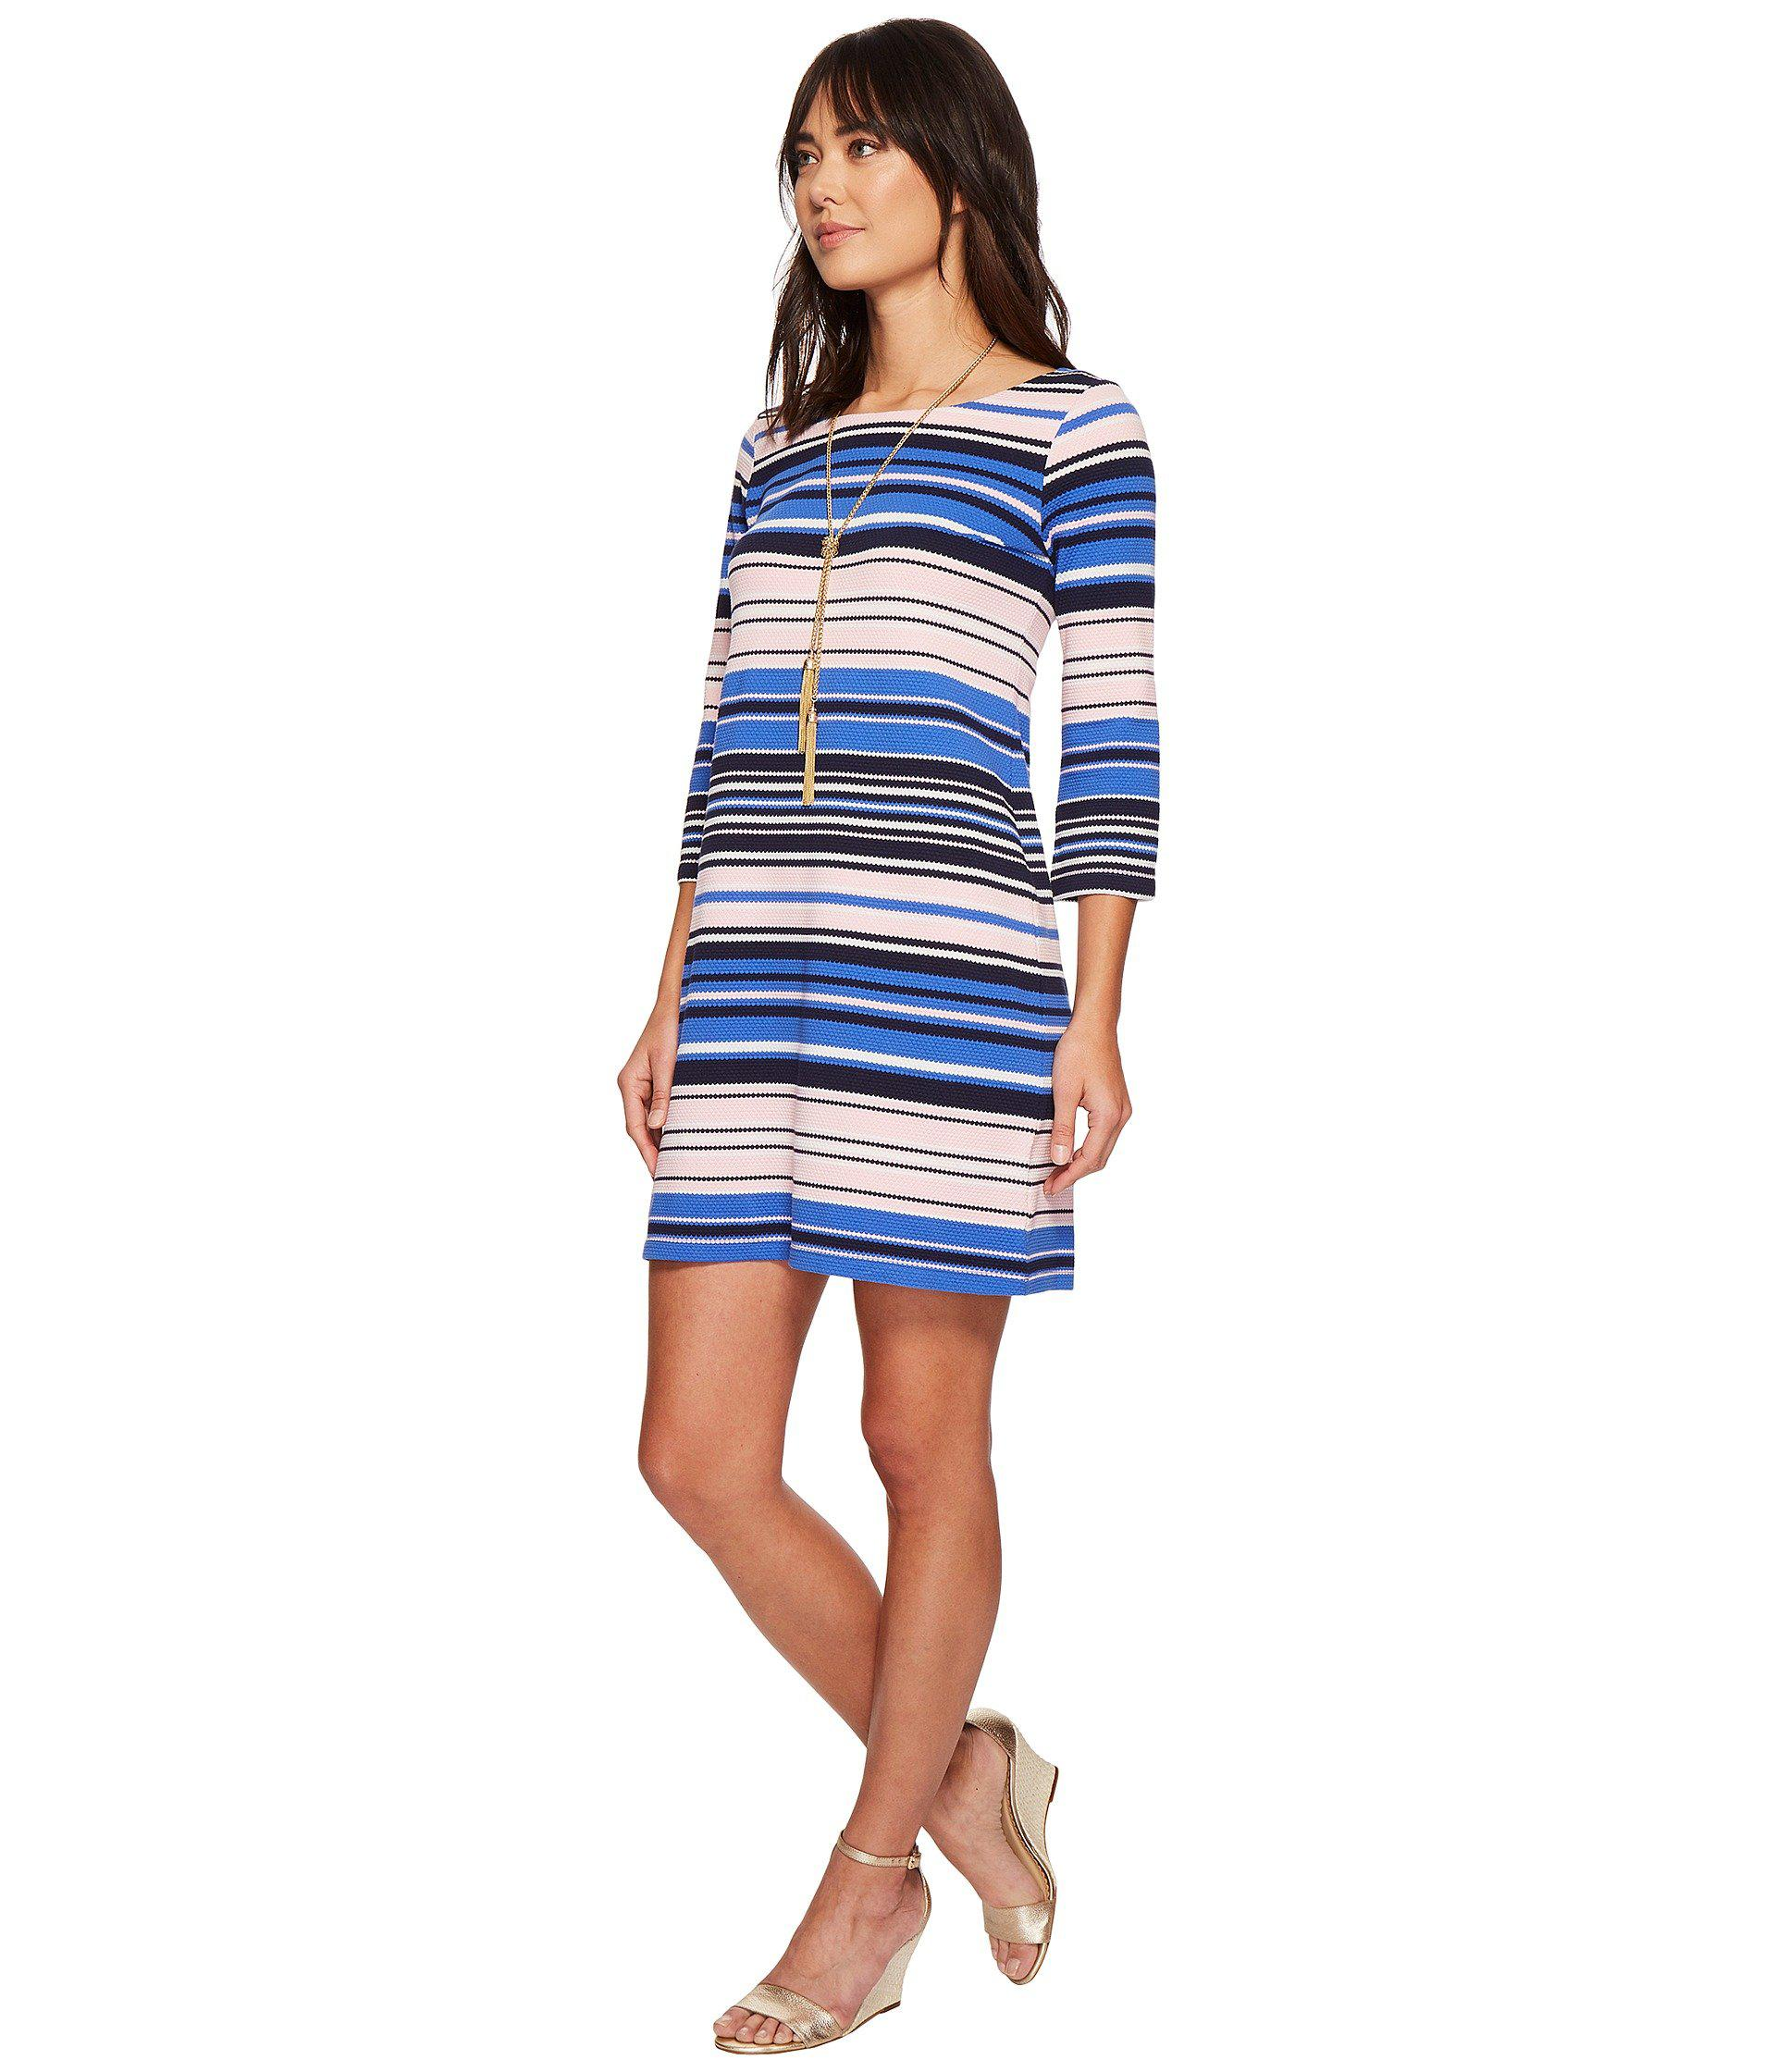 b5e146c81e Lyst - Lilly Pulitzer Bay Dress (paradise Pink The Swim Stripe) Women s  Dress in Blue - Save 55%